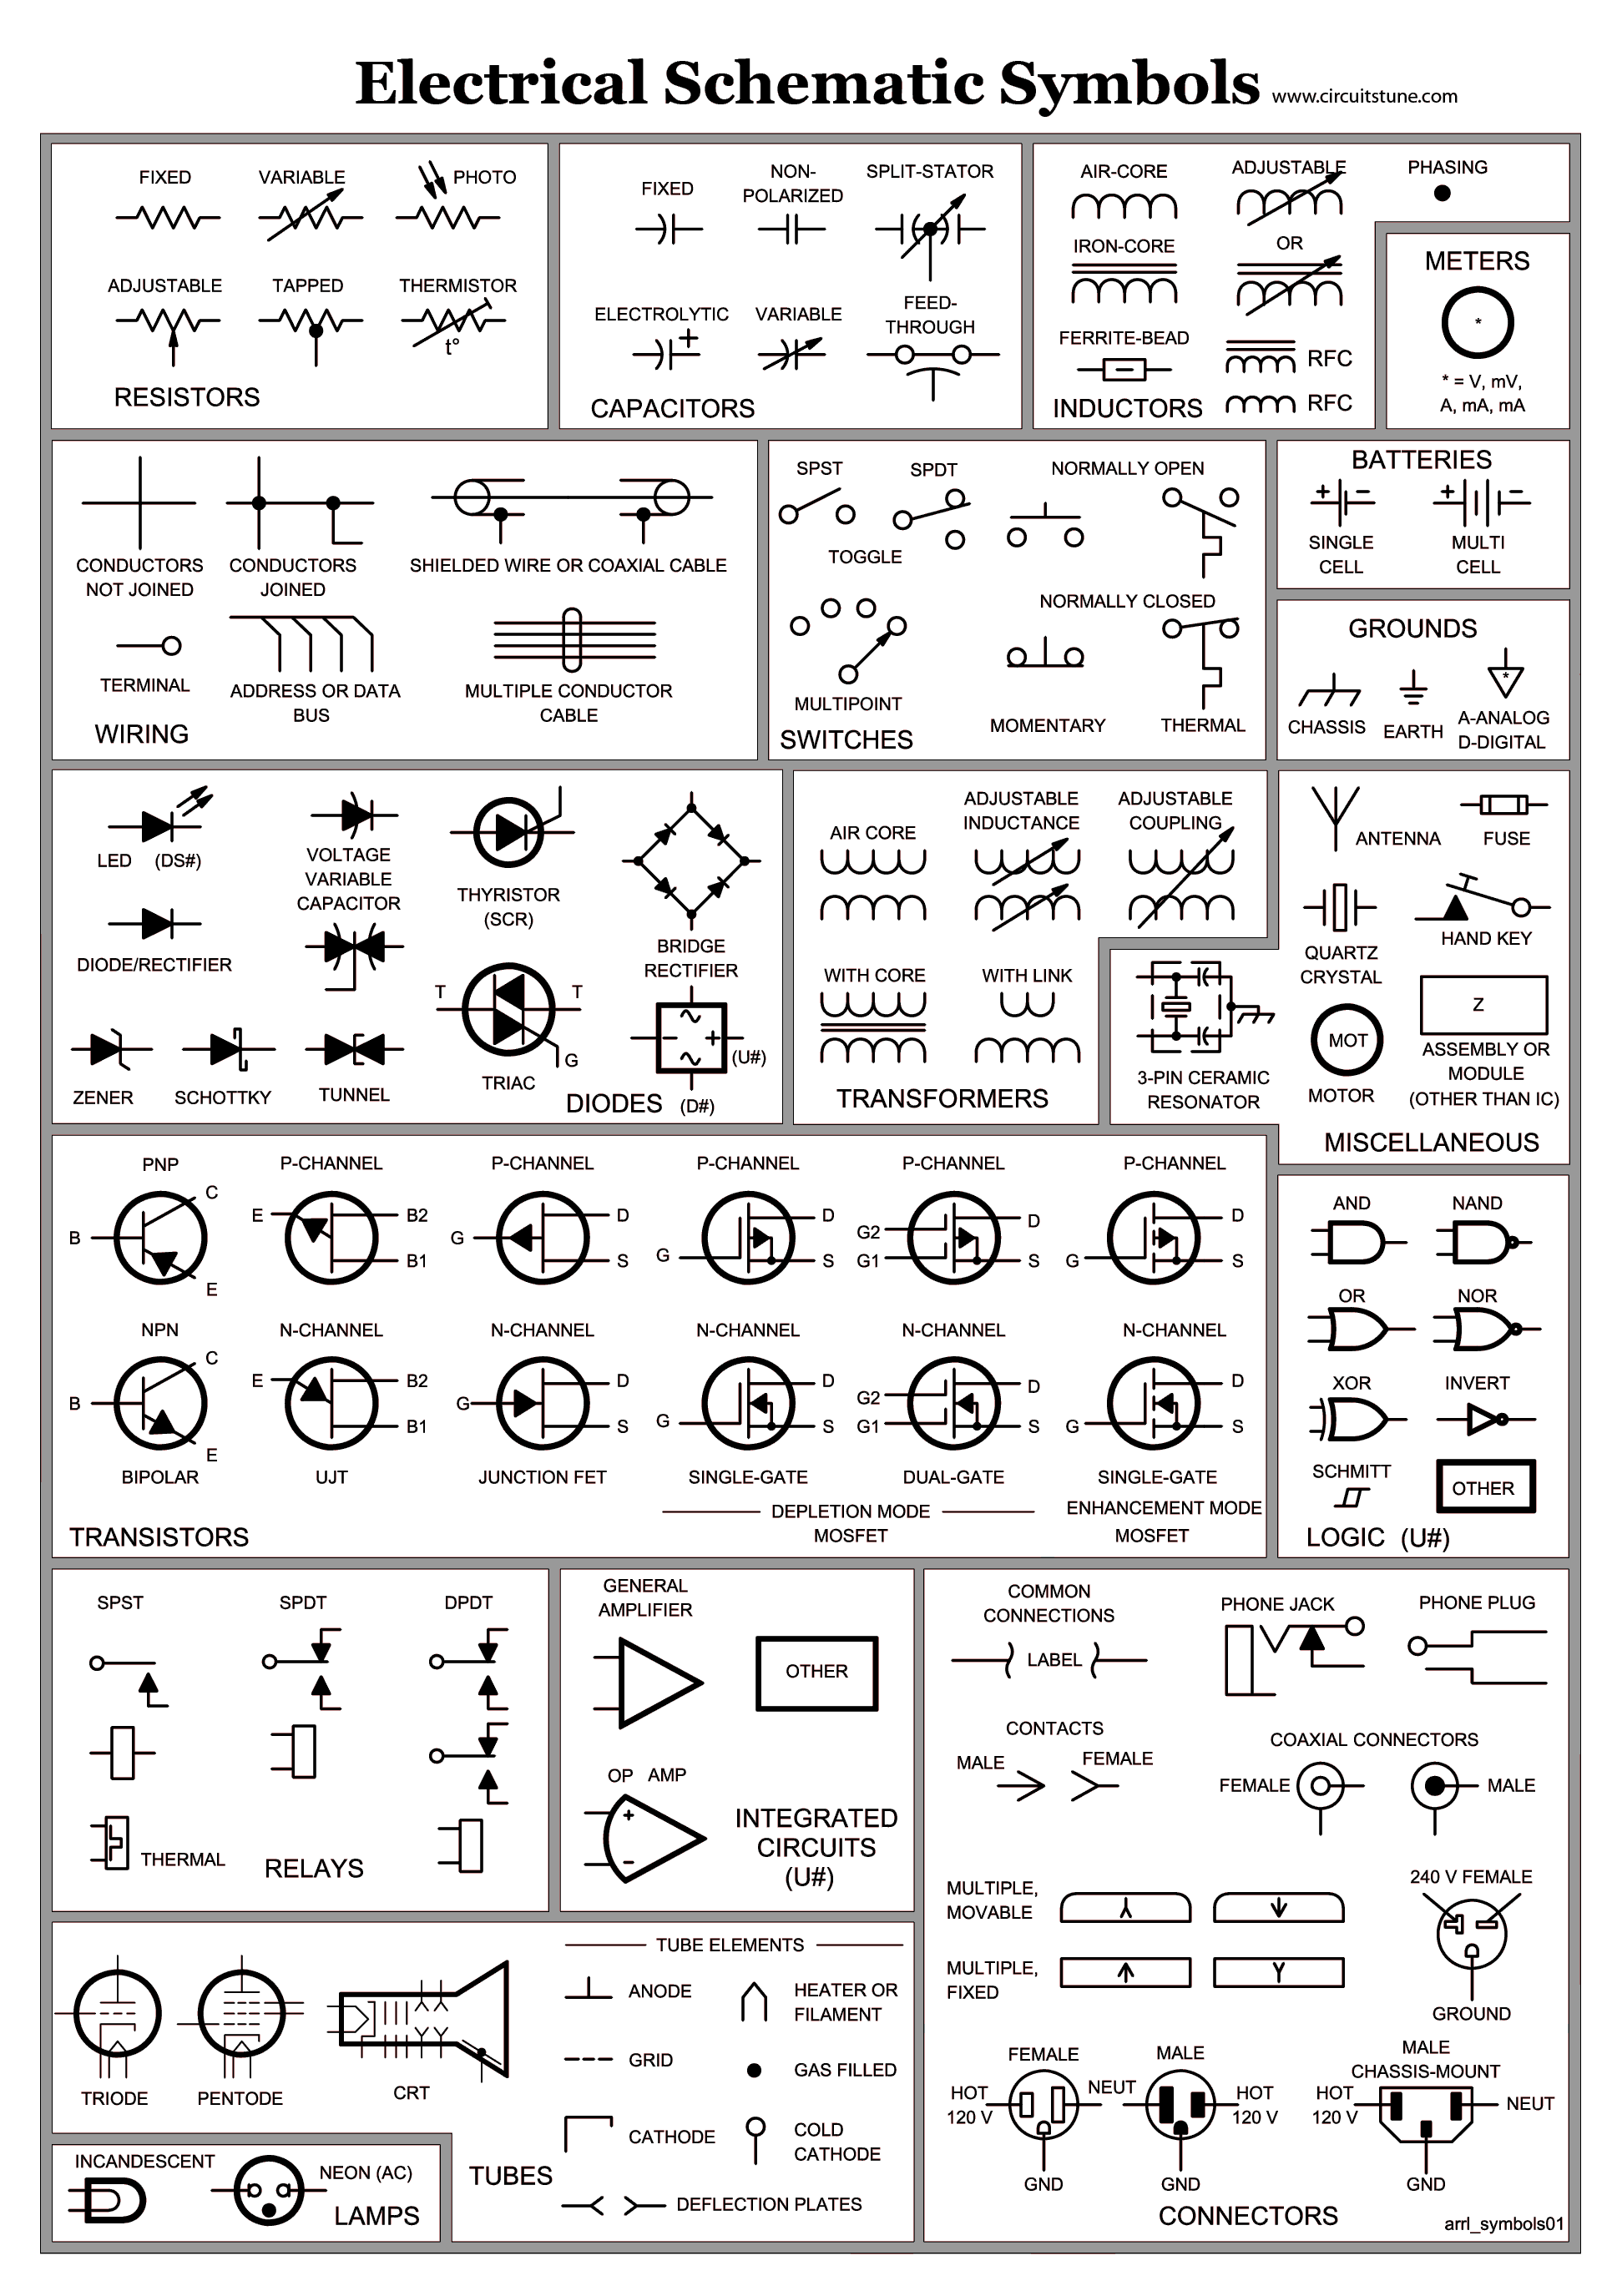 Wiring diagram symbols wiring diagrams schematics electrical schematic symbols wire diagram symbols automotive wiring electrical schematic symbols wire diagram symbols automotive wiring schematic wiring asfbconference2016 Image collections